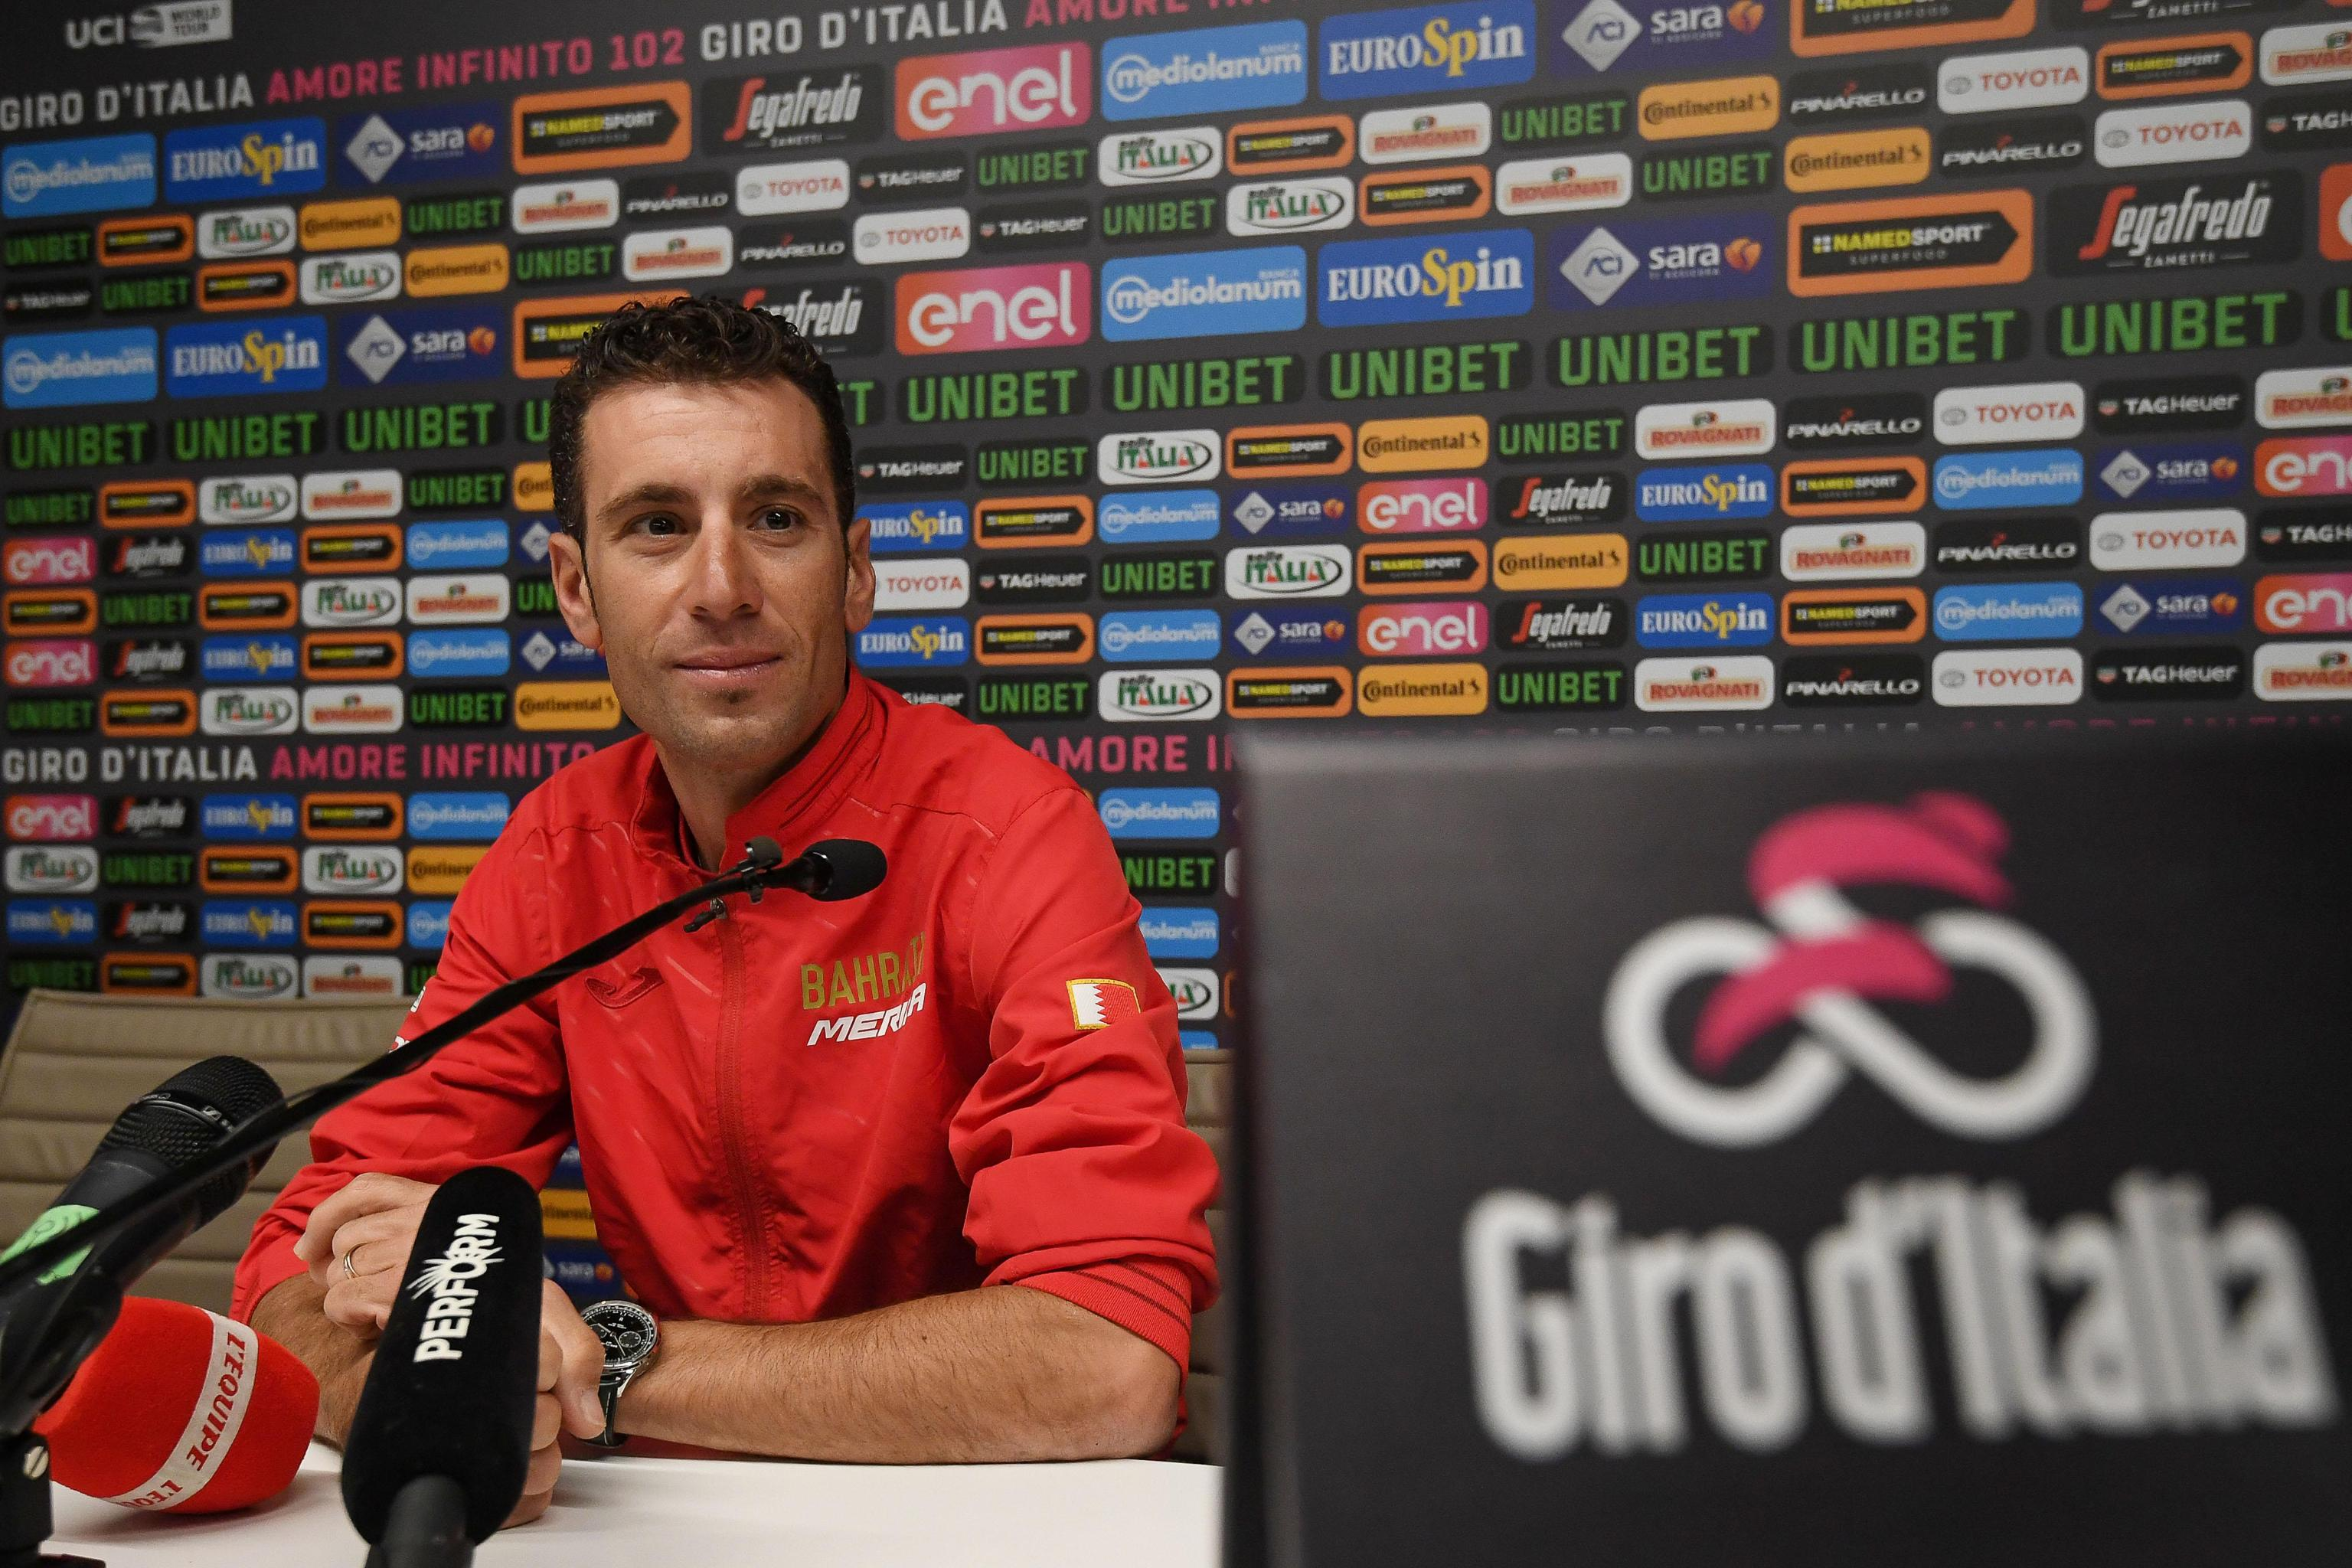 Italian rider Vincenzo Nibali of Bahrain - Merida, during a press conference on the Giro d'Italia 2019, Bologna, Italy 9 May 2019. The 102th edition of the Giro d'Italia will start in Bologna on 11 May 2019. ANSA/ALESSANDRO DI MEO